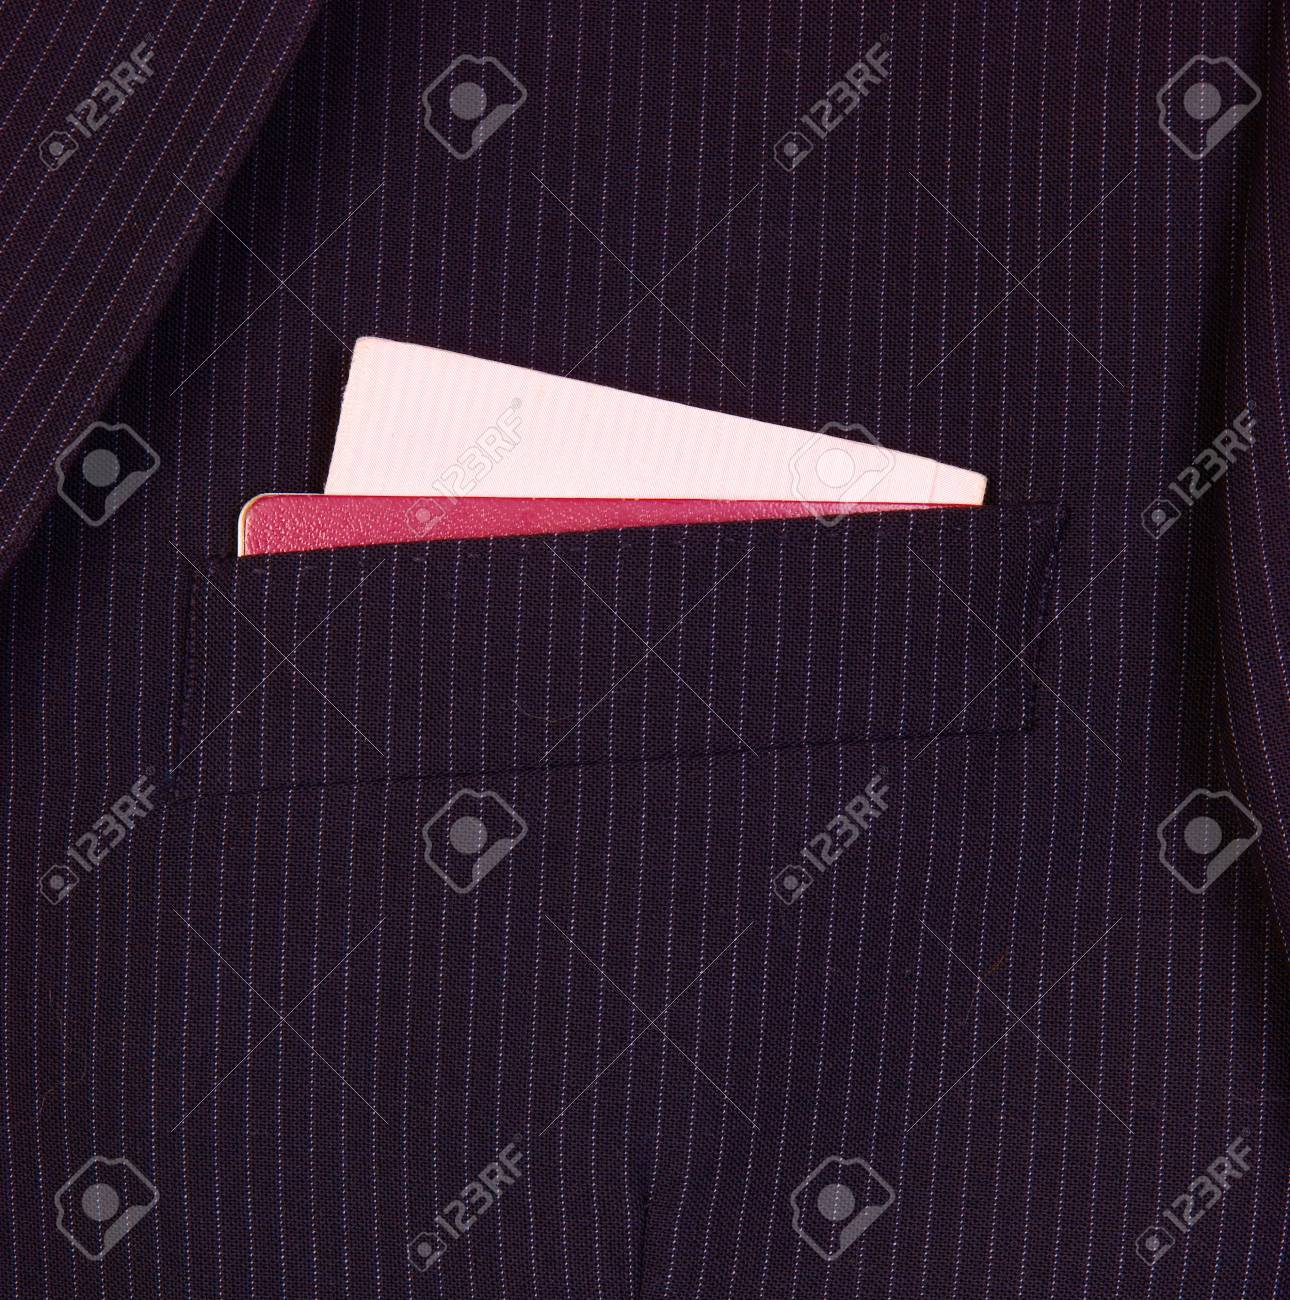 Suit with international passport and driving license Stock Photo - 9652061